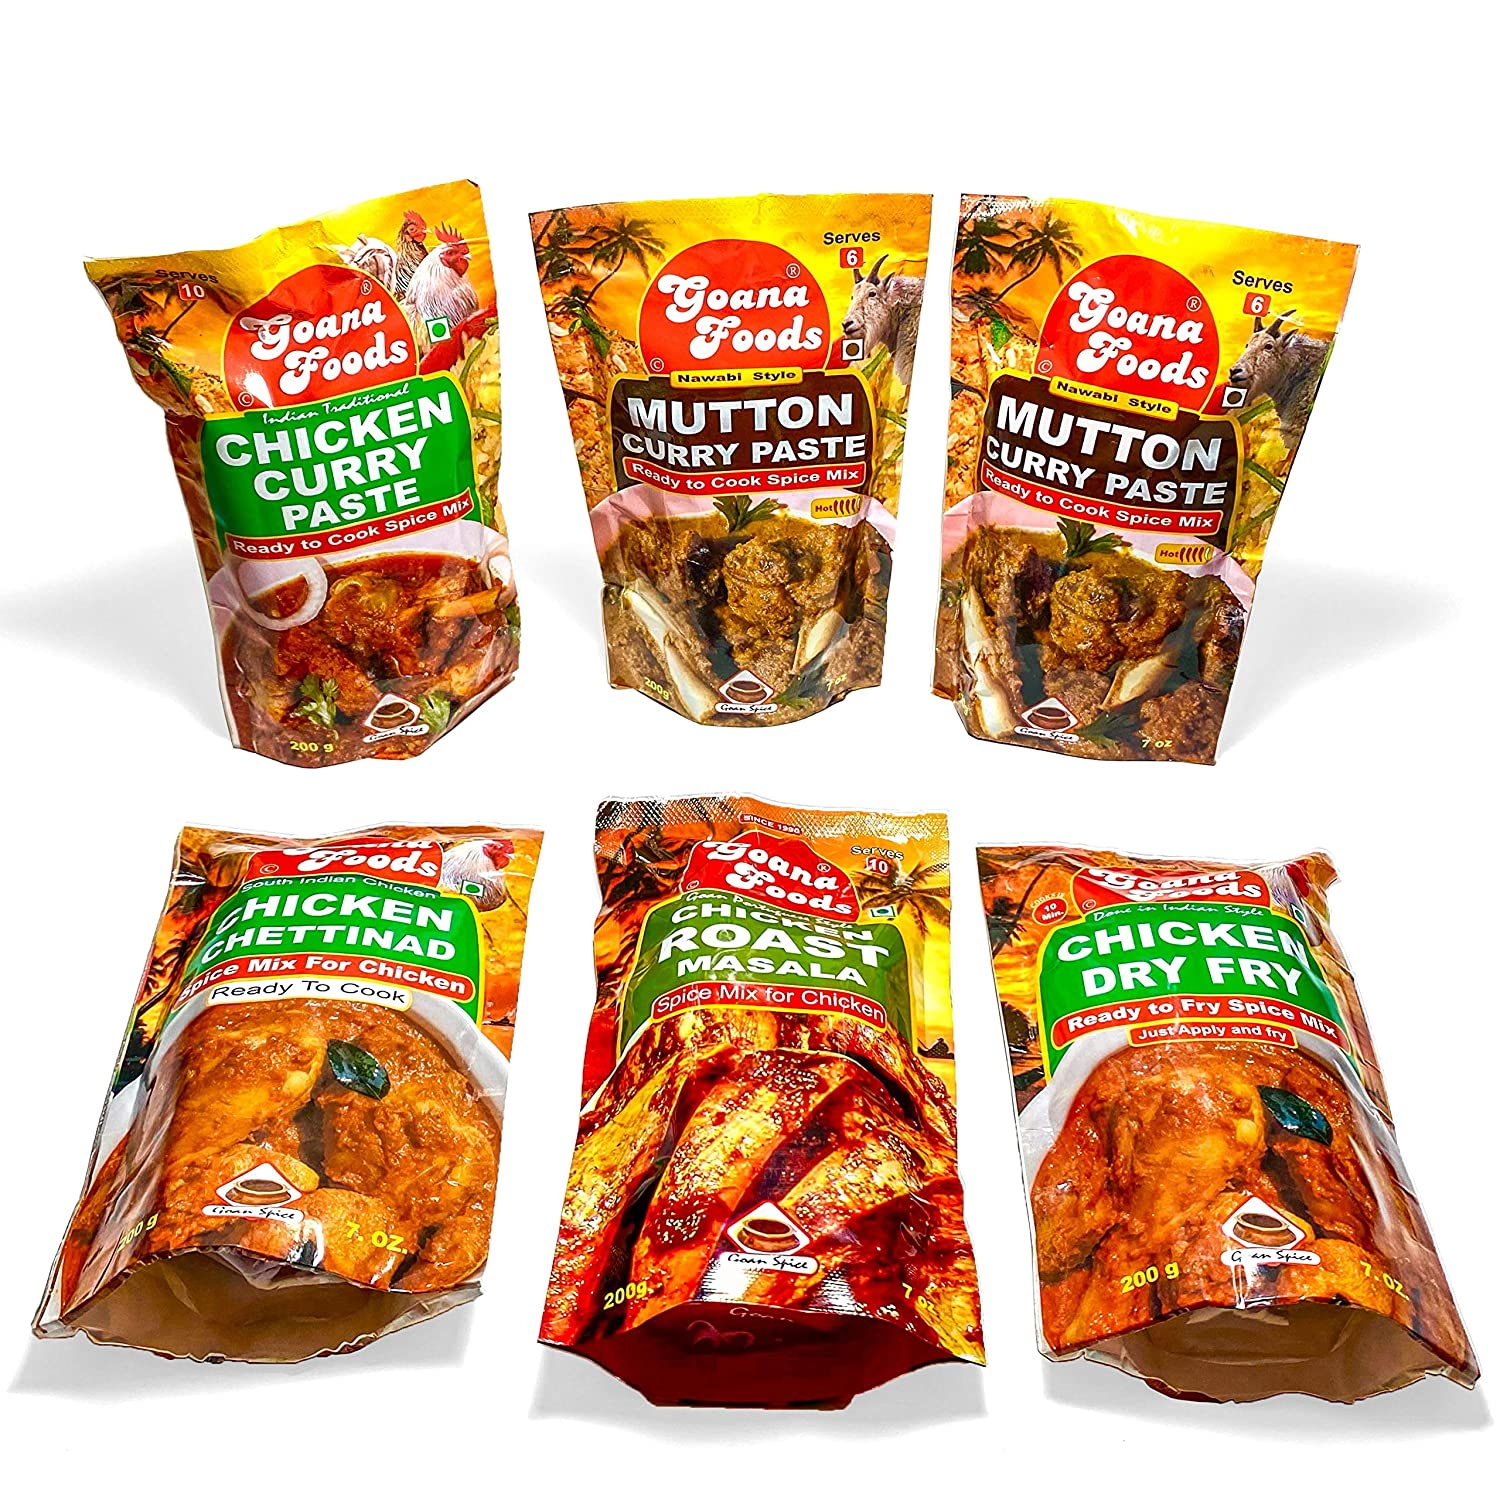 Ron Foods Indian Masala Combo of 6   Chicken Curry Paste (7 oz),(2) Mutton Curry Paste(7 oz), Chicken Chettinad (7 oz), Chicken Roast Masala (7 oz), Chicken Dry Fry Masala (7 oz)